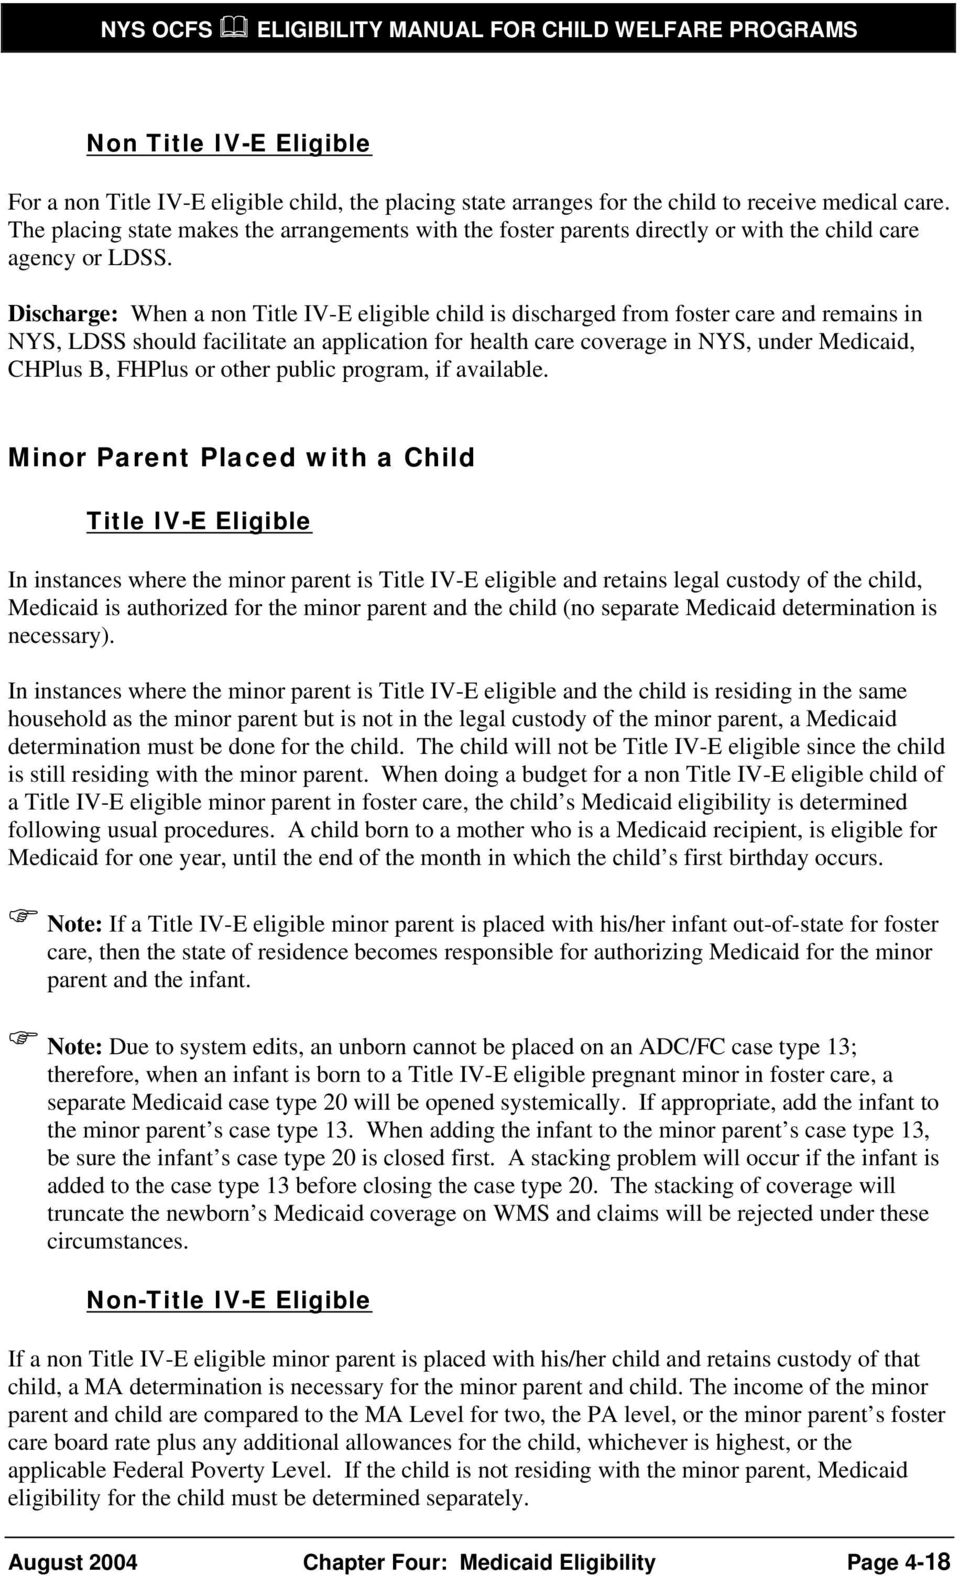 Discharge: When a non Title IV-E eligible child is discharged from foster care and remains in NYS, LDSS should facilitate an application for health care coverage in NYS, under Medicaid, CHPlus B,